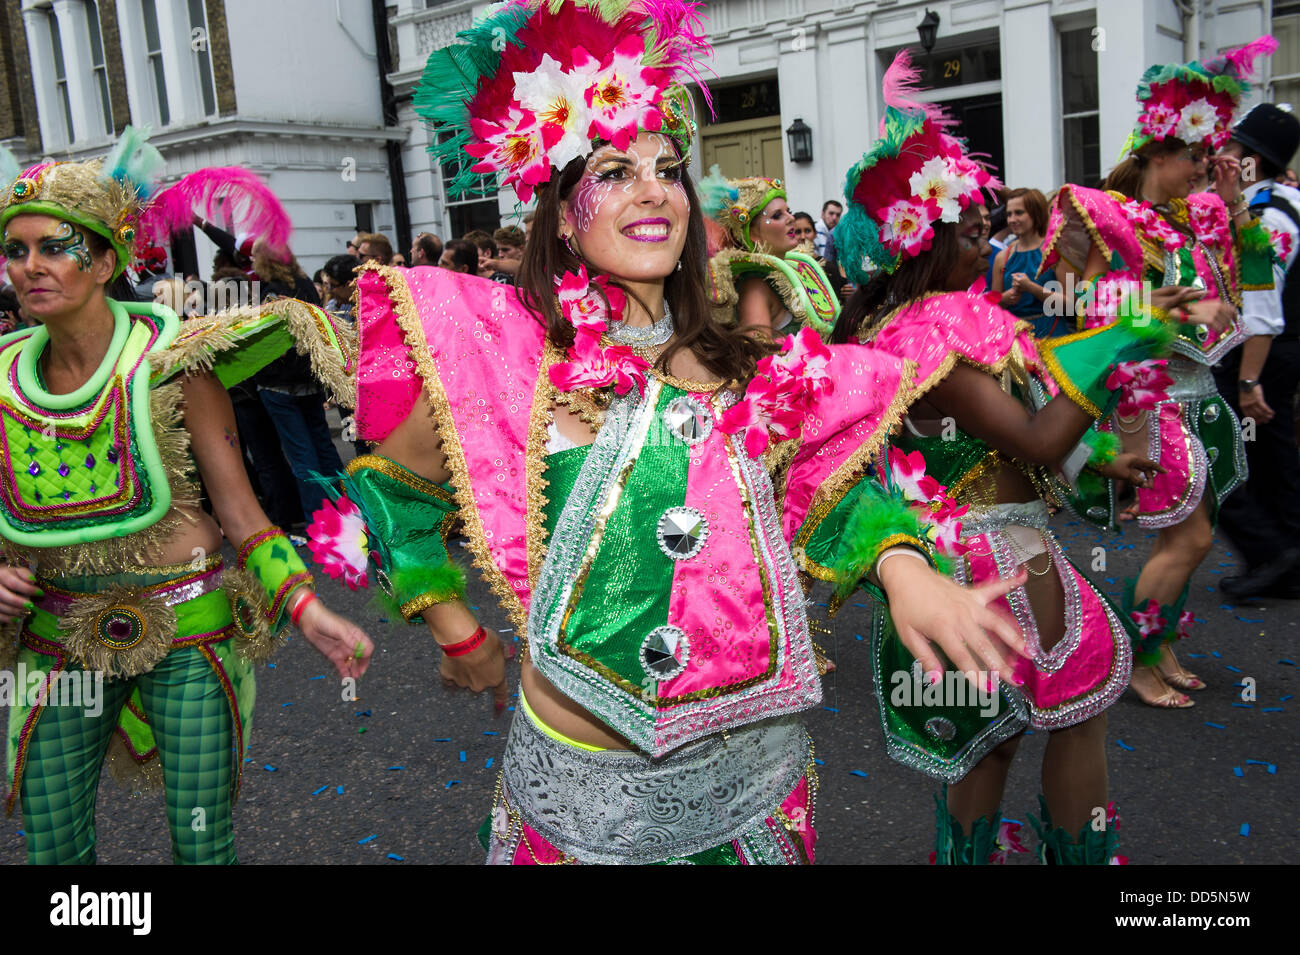 London, UK. 26th Aug, 2013. Paraiso school of Samba perform at the Notting Hill Carnival, London, UK,  26 August - Stock Image